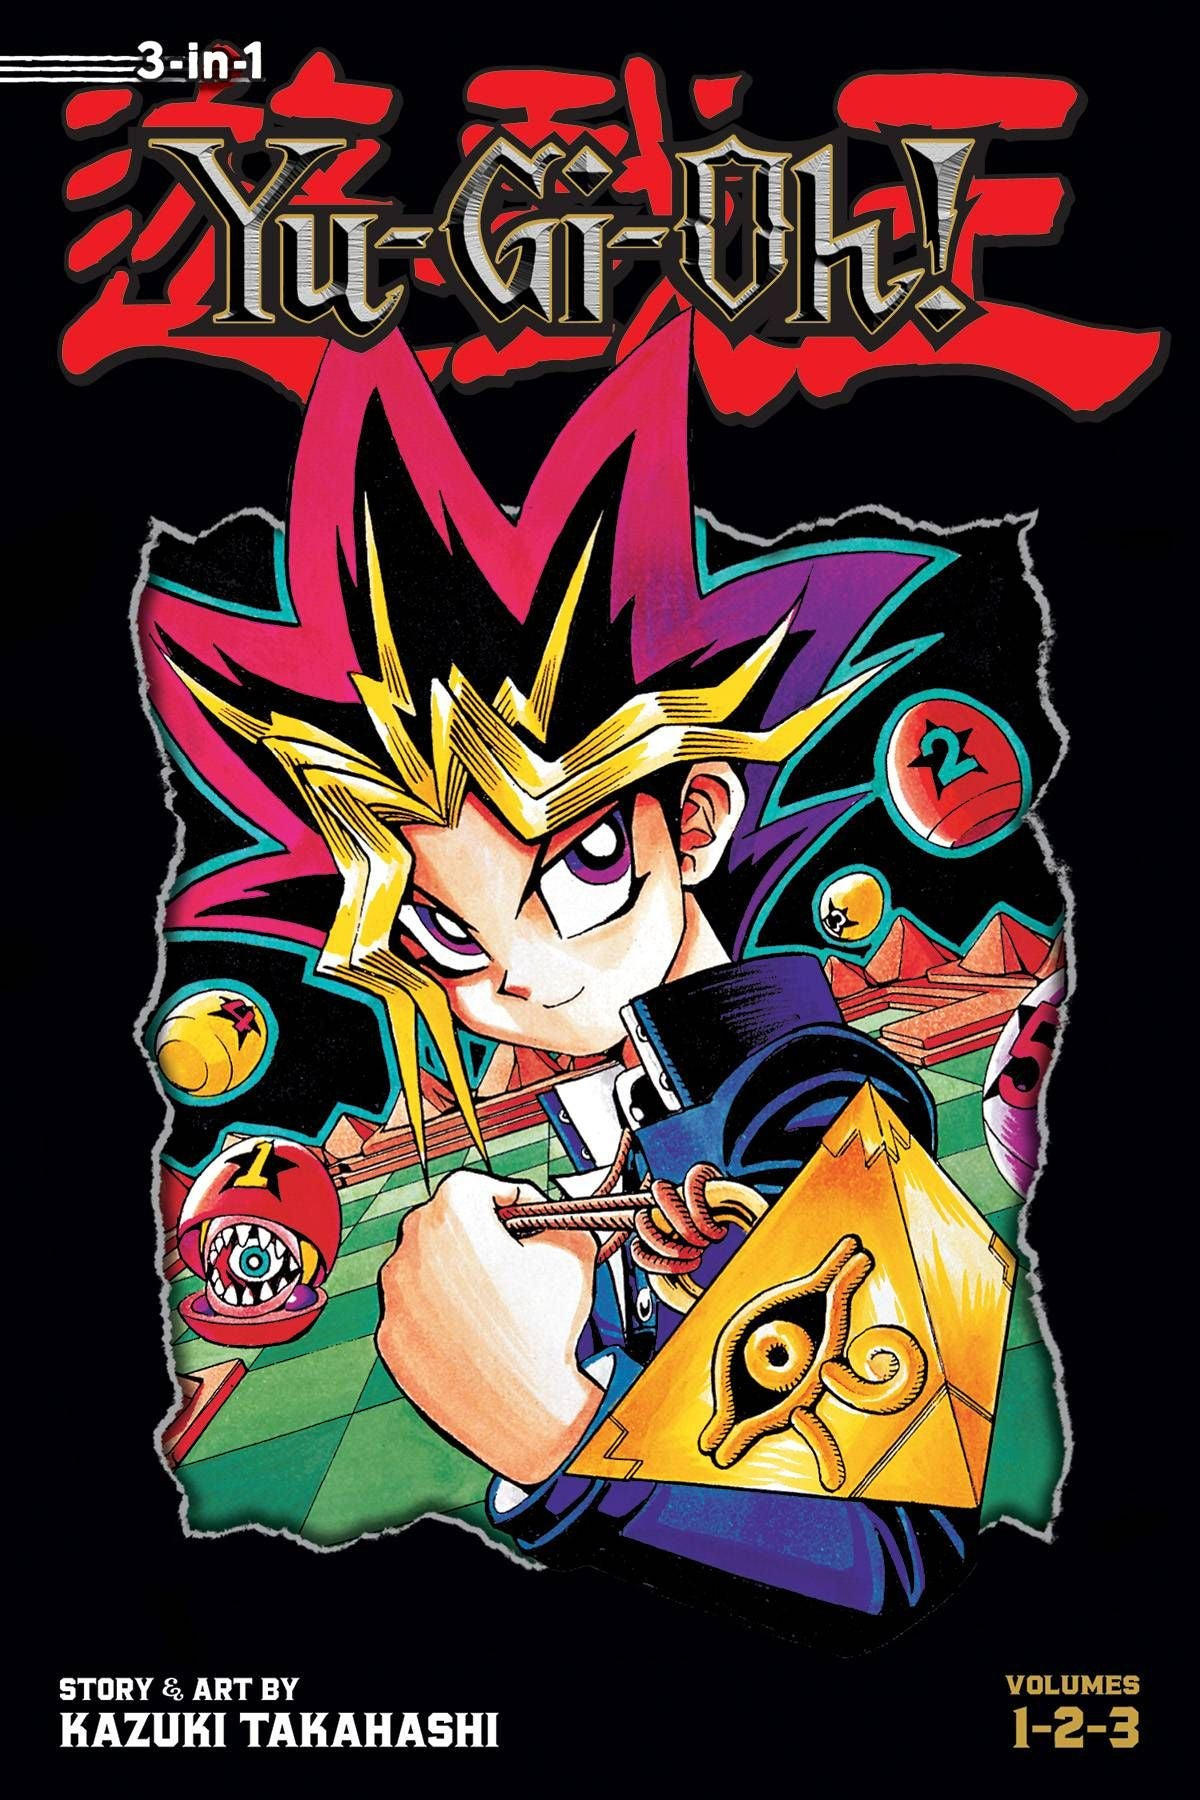 Yu Gi Oh 3-in-1 Edition Volume 1